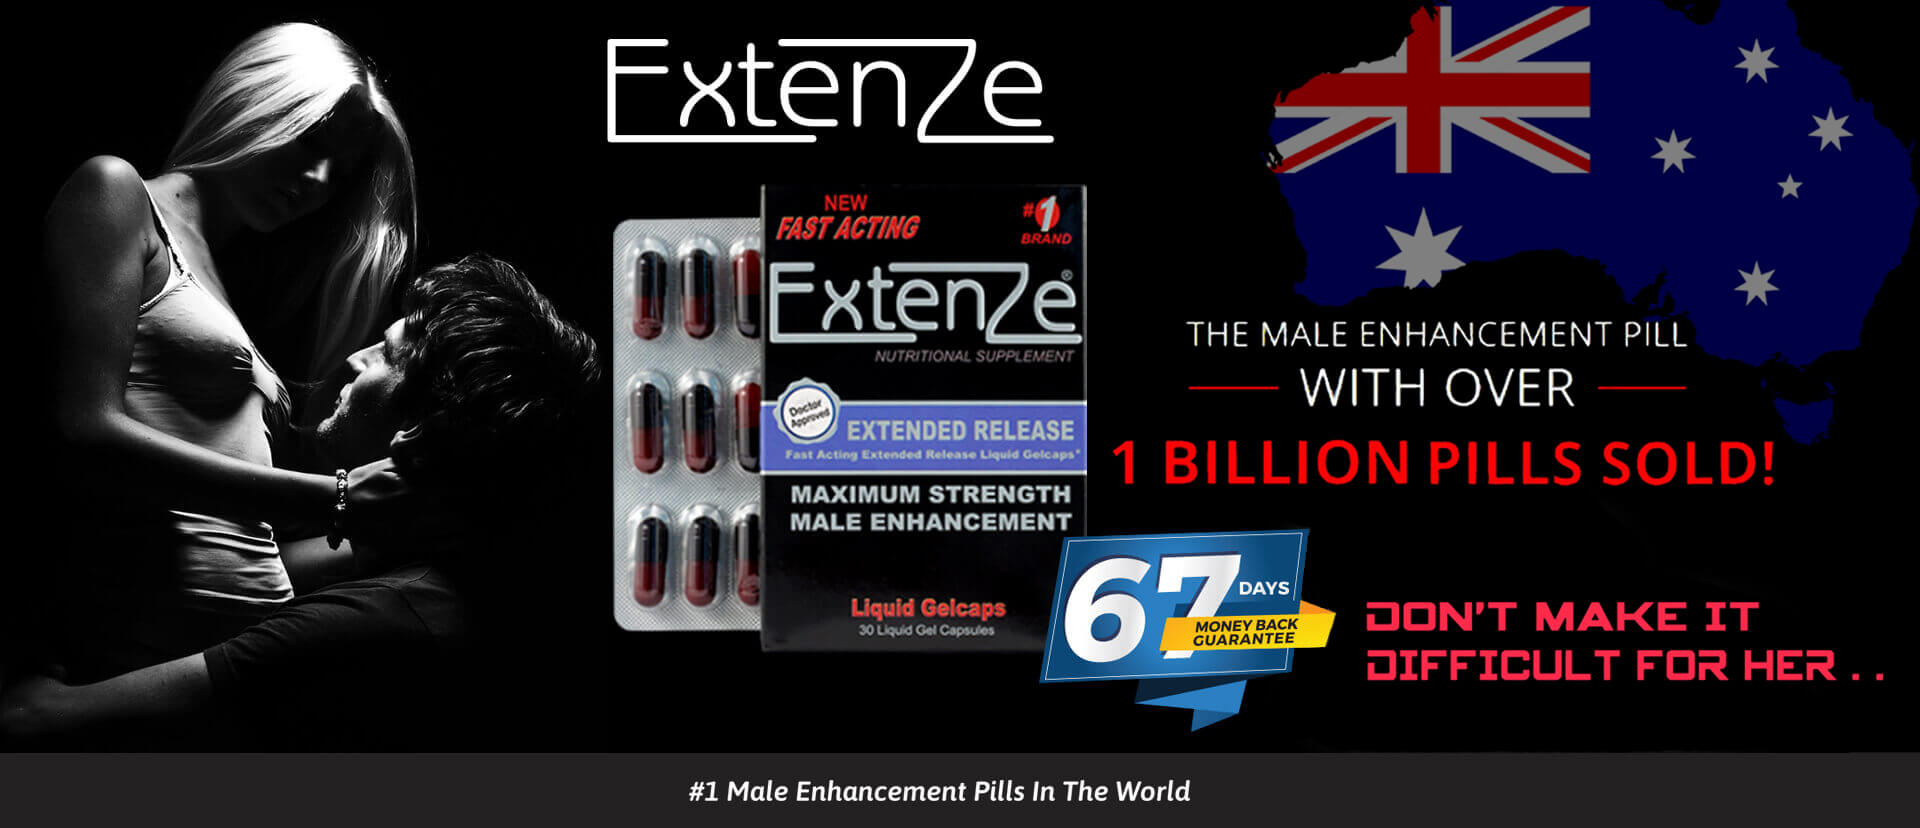 inches Male Enhancement Pills